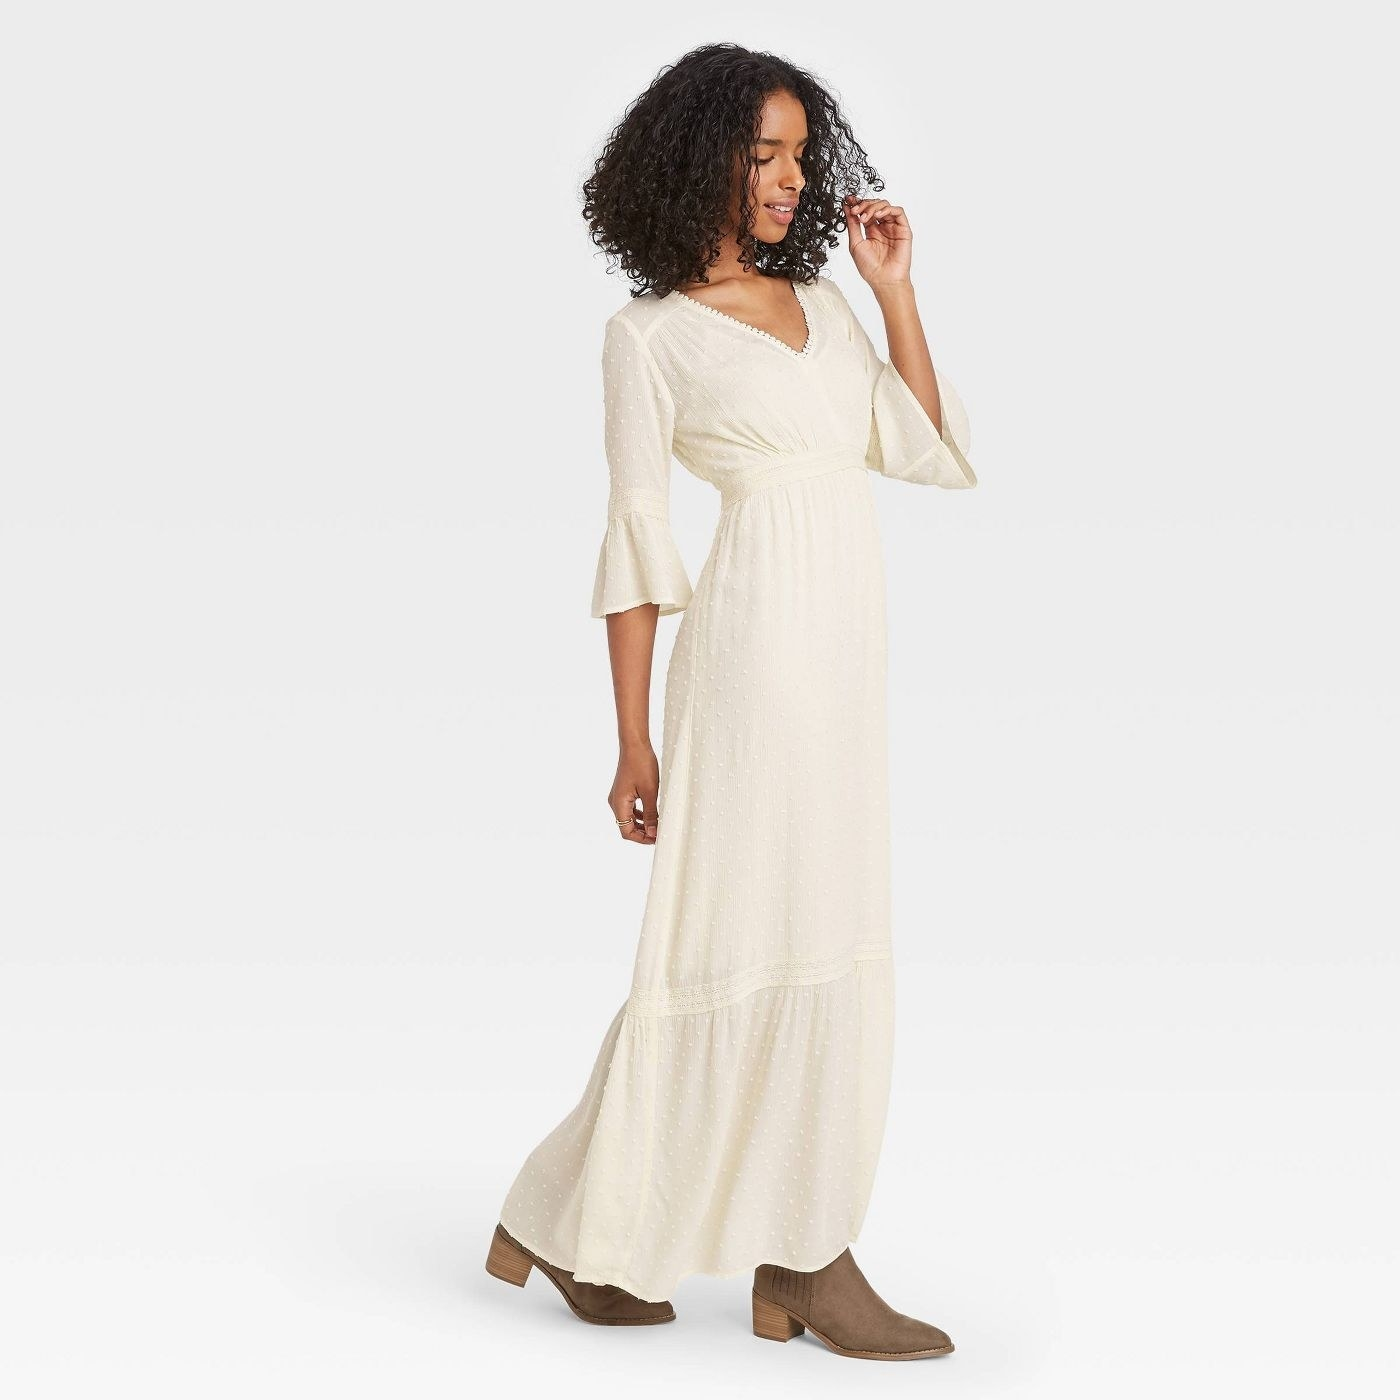 Model wearing off off white maxi dress, goes past the ankle